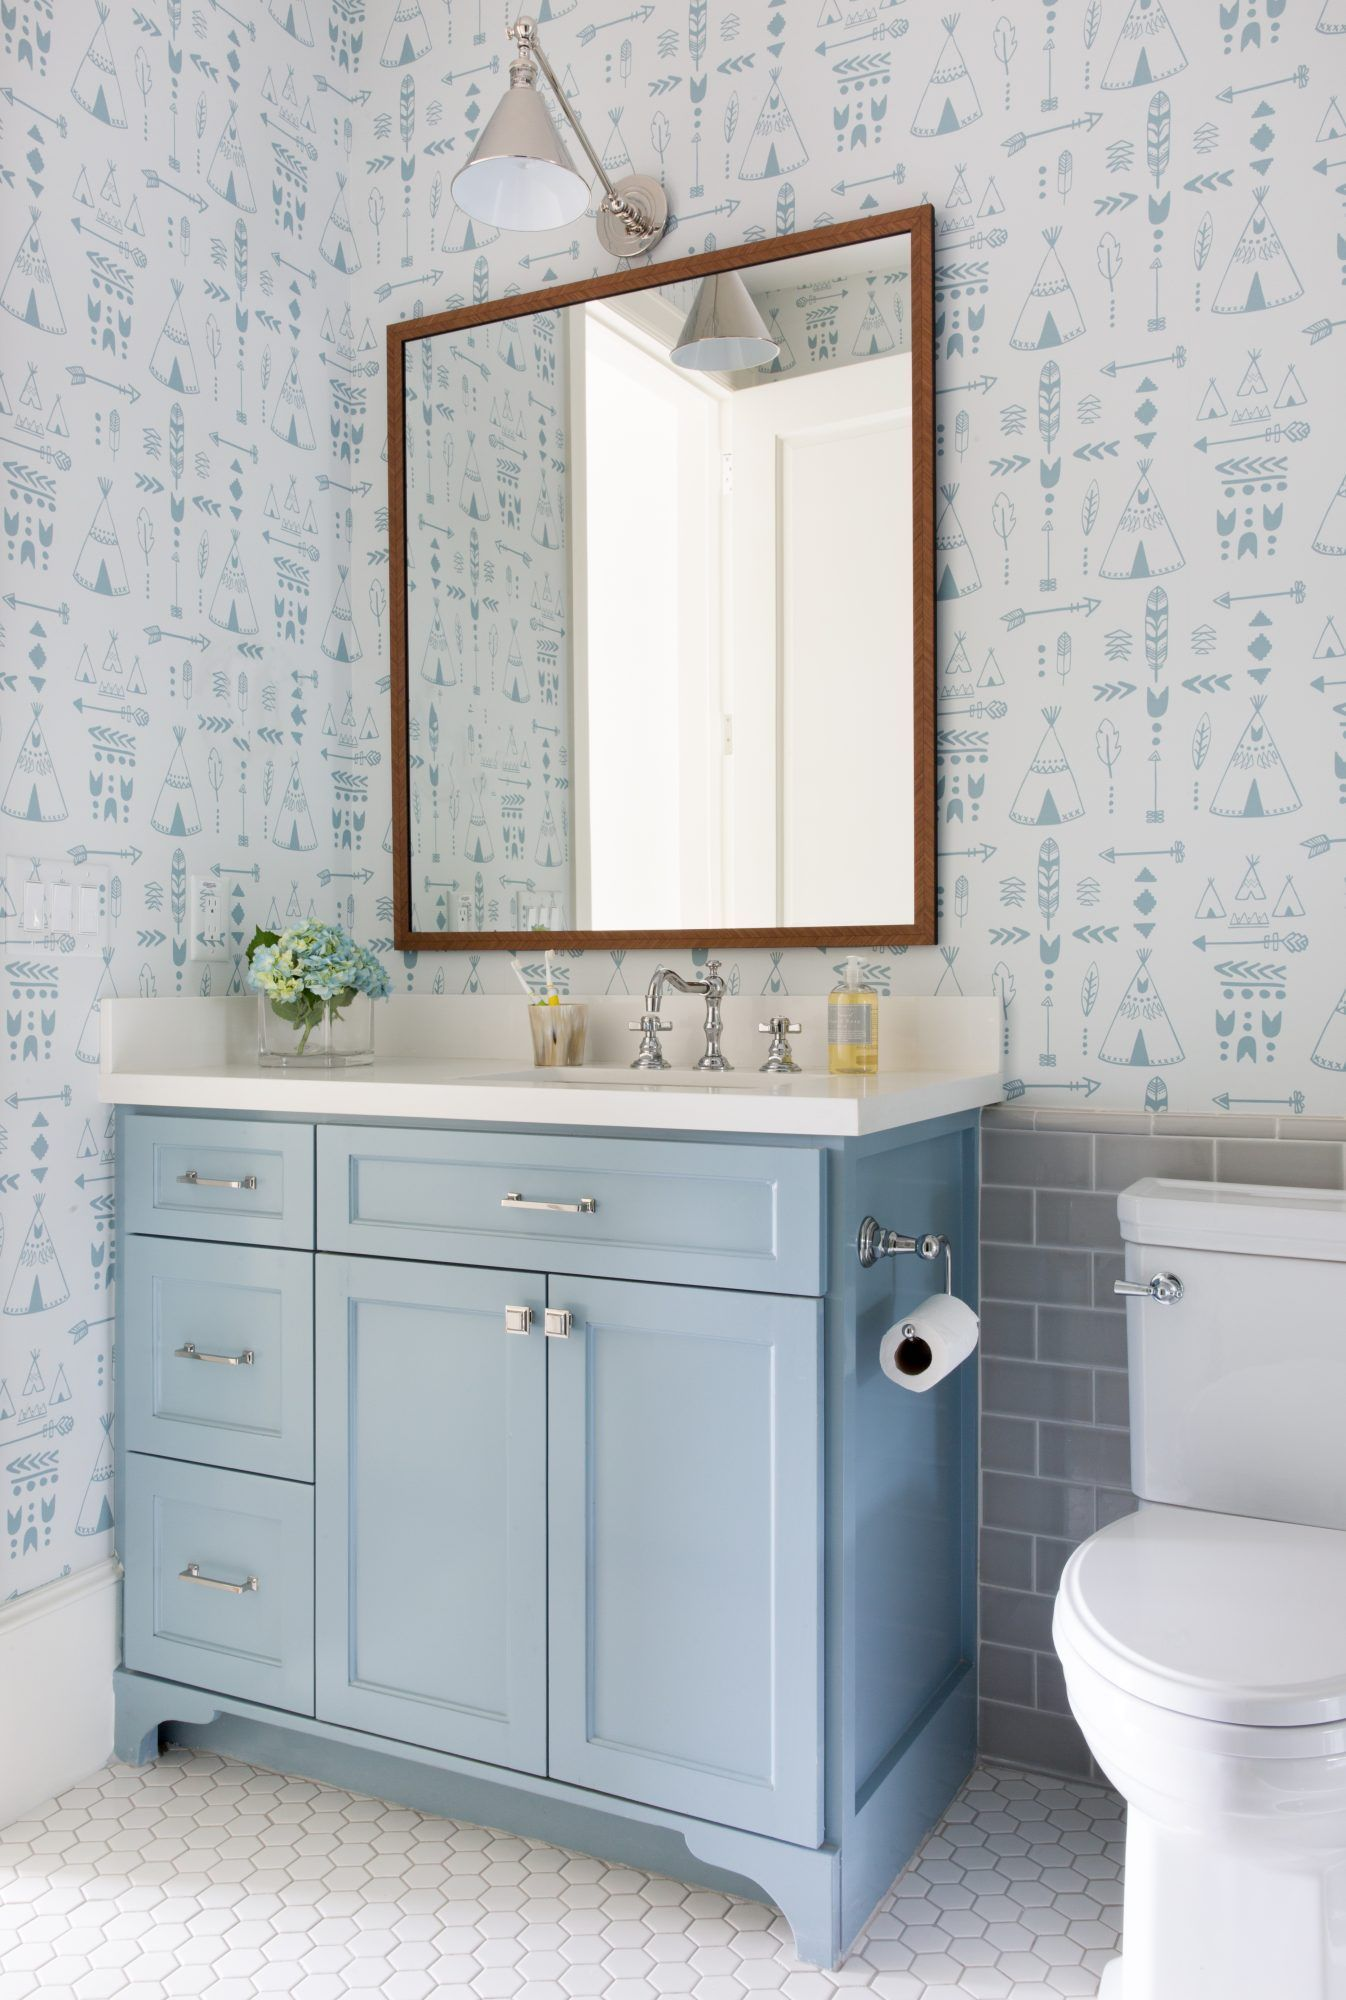 The Best Light Blue Paint Colors For Every Room According To Designers In 2020 Trendy Bathroom Tiles Gray Wallpaper Bathroom Light Blue Paint Colors